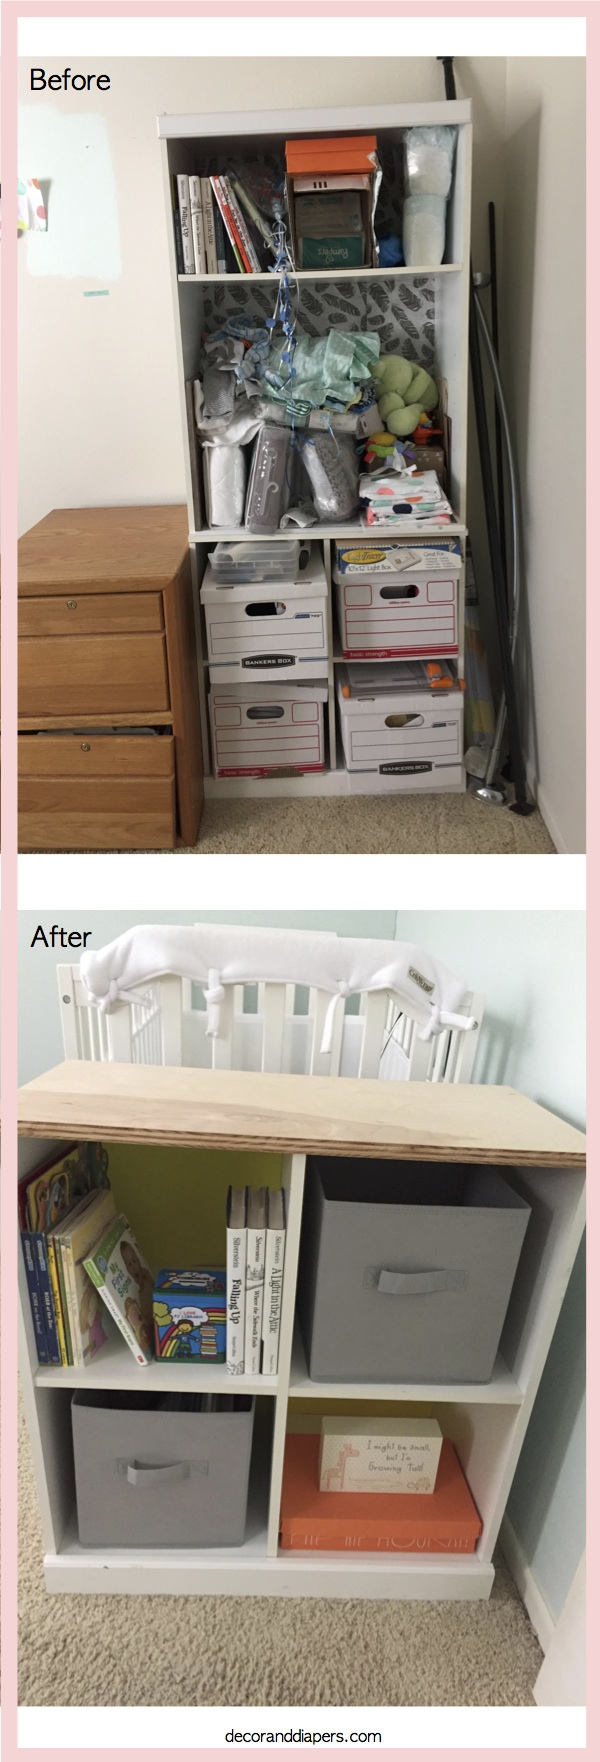 20171114 Nursery Bookcase Re-design